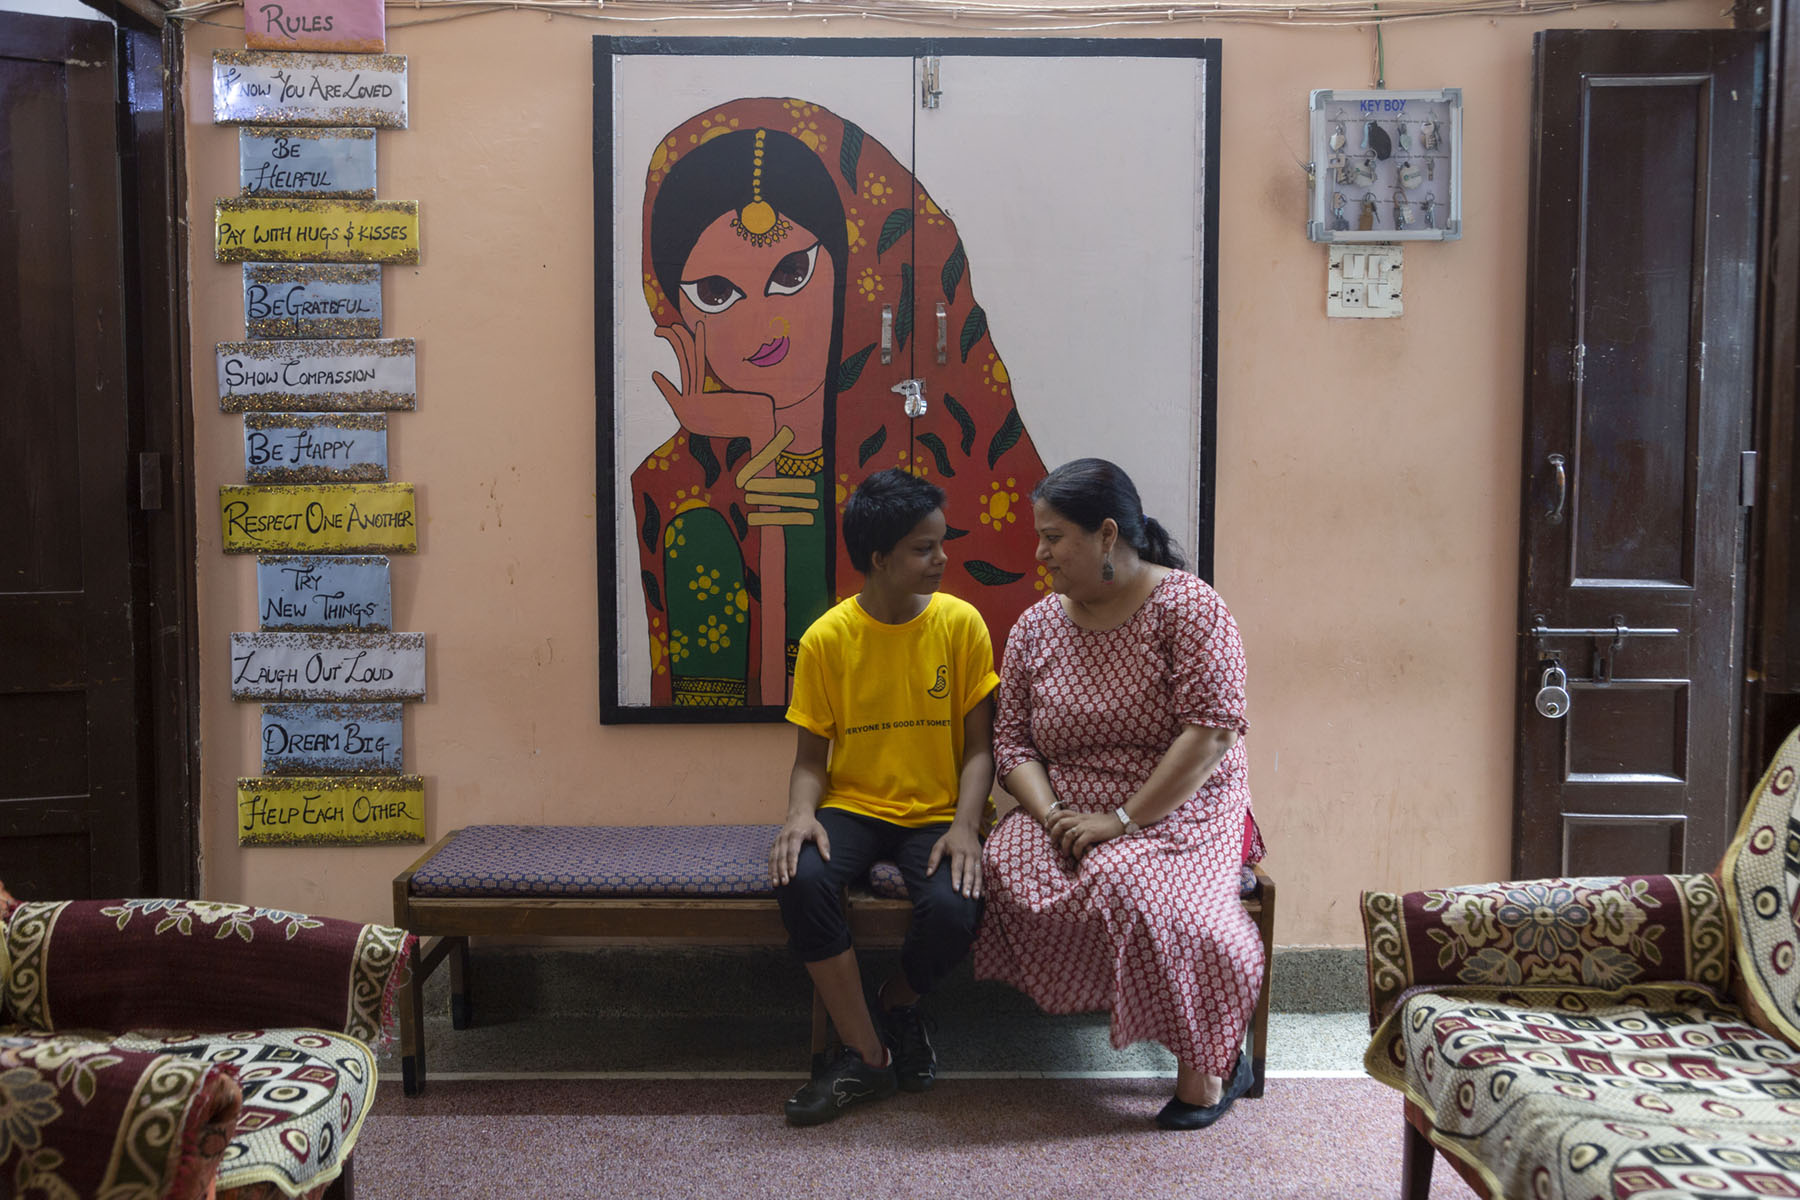 """Israna wearing a yellow T-shirt and knee-high black pants is sitting on a divan next to her Sign language interpreter Shuchi Dasmana (42) who wears a salwar-kameez in a pink and maroon print. A huge painting hangs on the wall behind them. It shows a stylised bust of a woman wearing a green salwar, bangles, golden forehead jewellery (maang tikka) and a red dupatta covering her head. To the left, arranged in a vertical row on the wall are several slogans such as """"Be Helpful"""", """"Respect one another"""", """"Show compassion"""" and """"Laugh out loud"""" handwritten in block letters."""